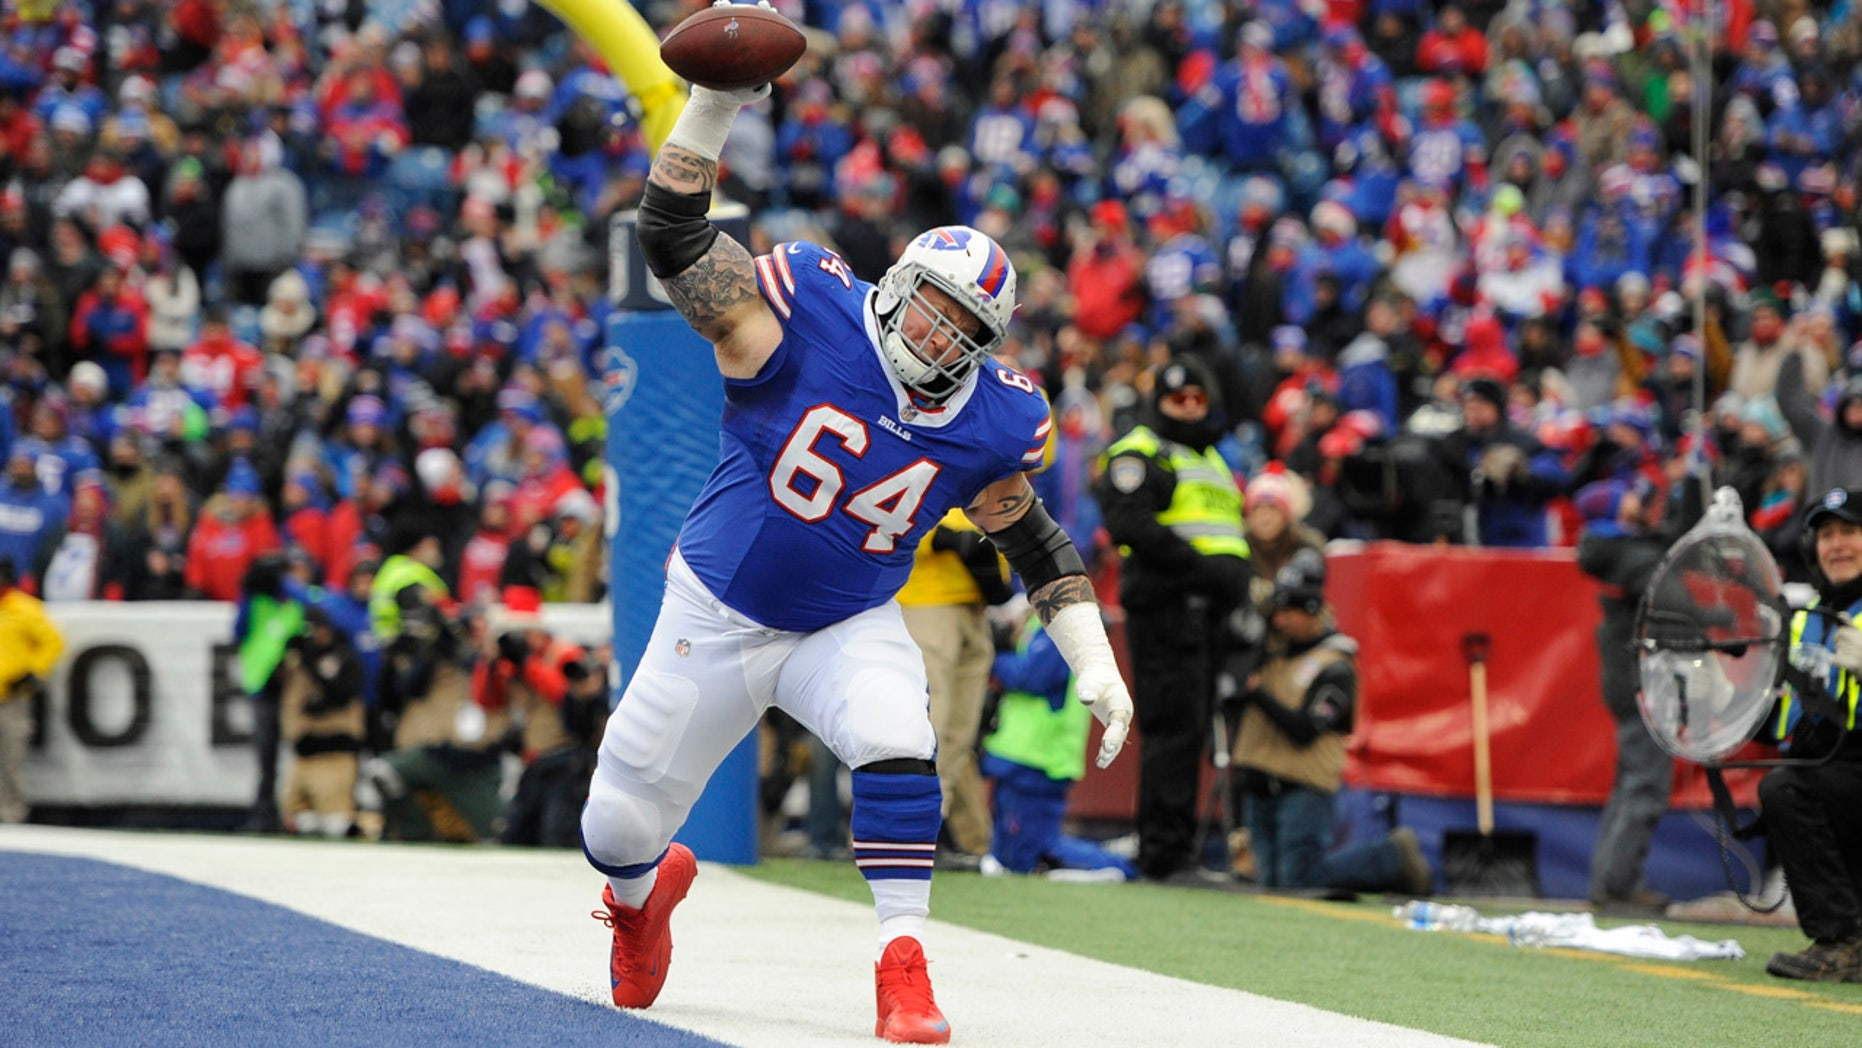 Buffalo Bills offensive guard Richie Incognito spikes the football after a Bills touchdown on Sunday.